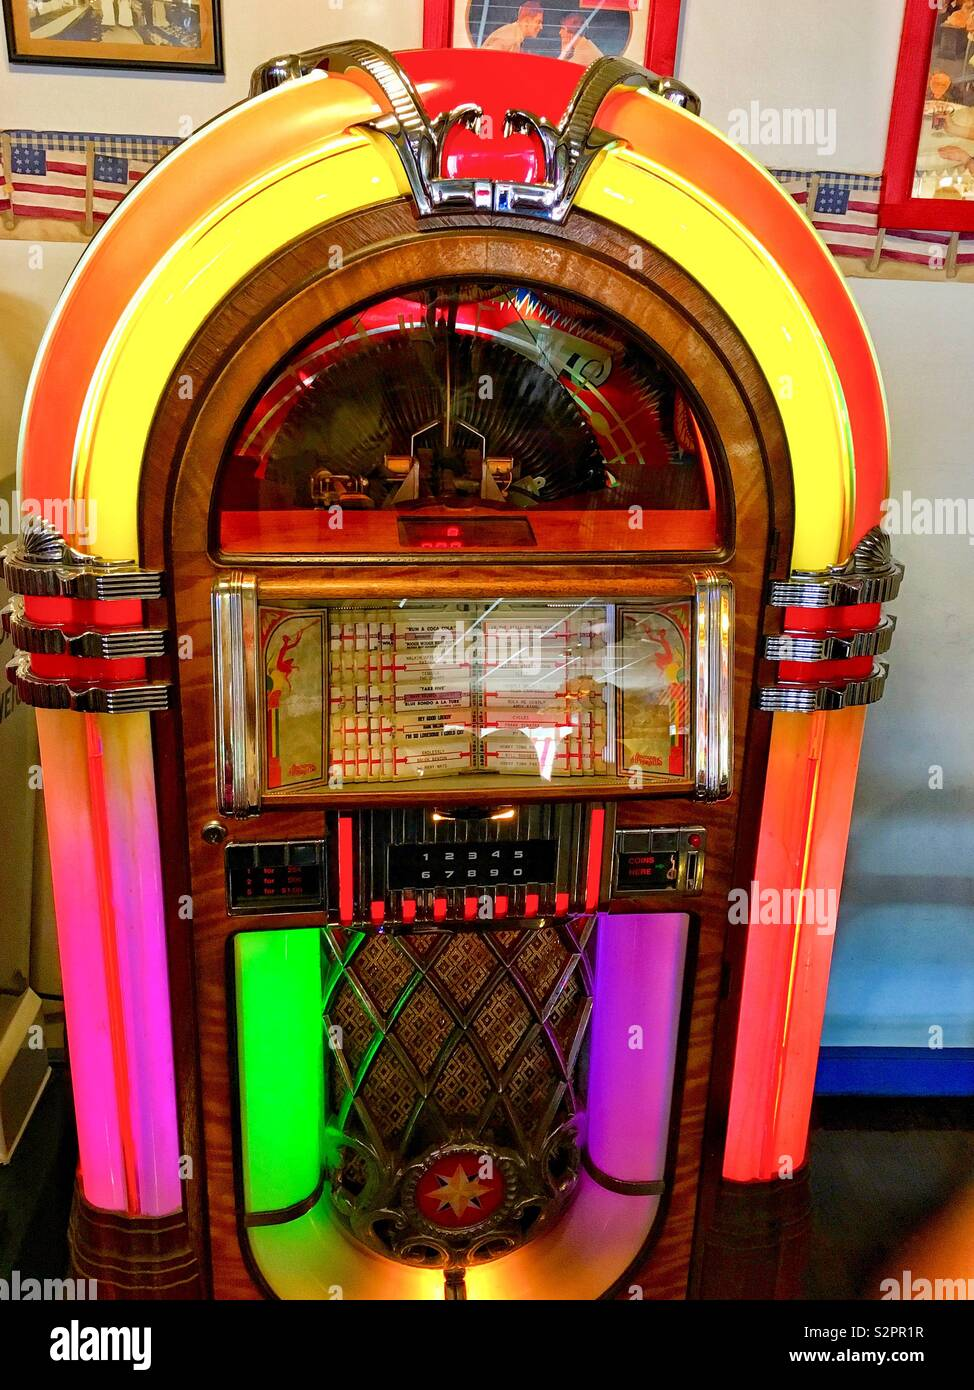 An old fashioned neon pink green orange and yellow nickelodeon aka jukebox sitting in old fashioned diner - Stock Image